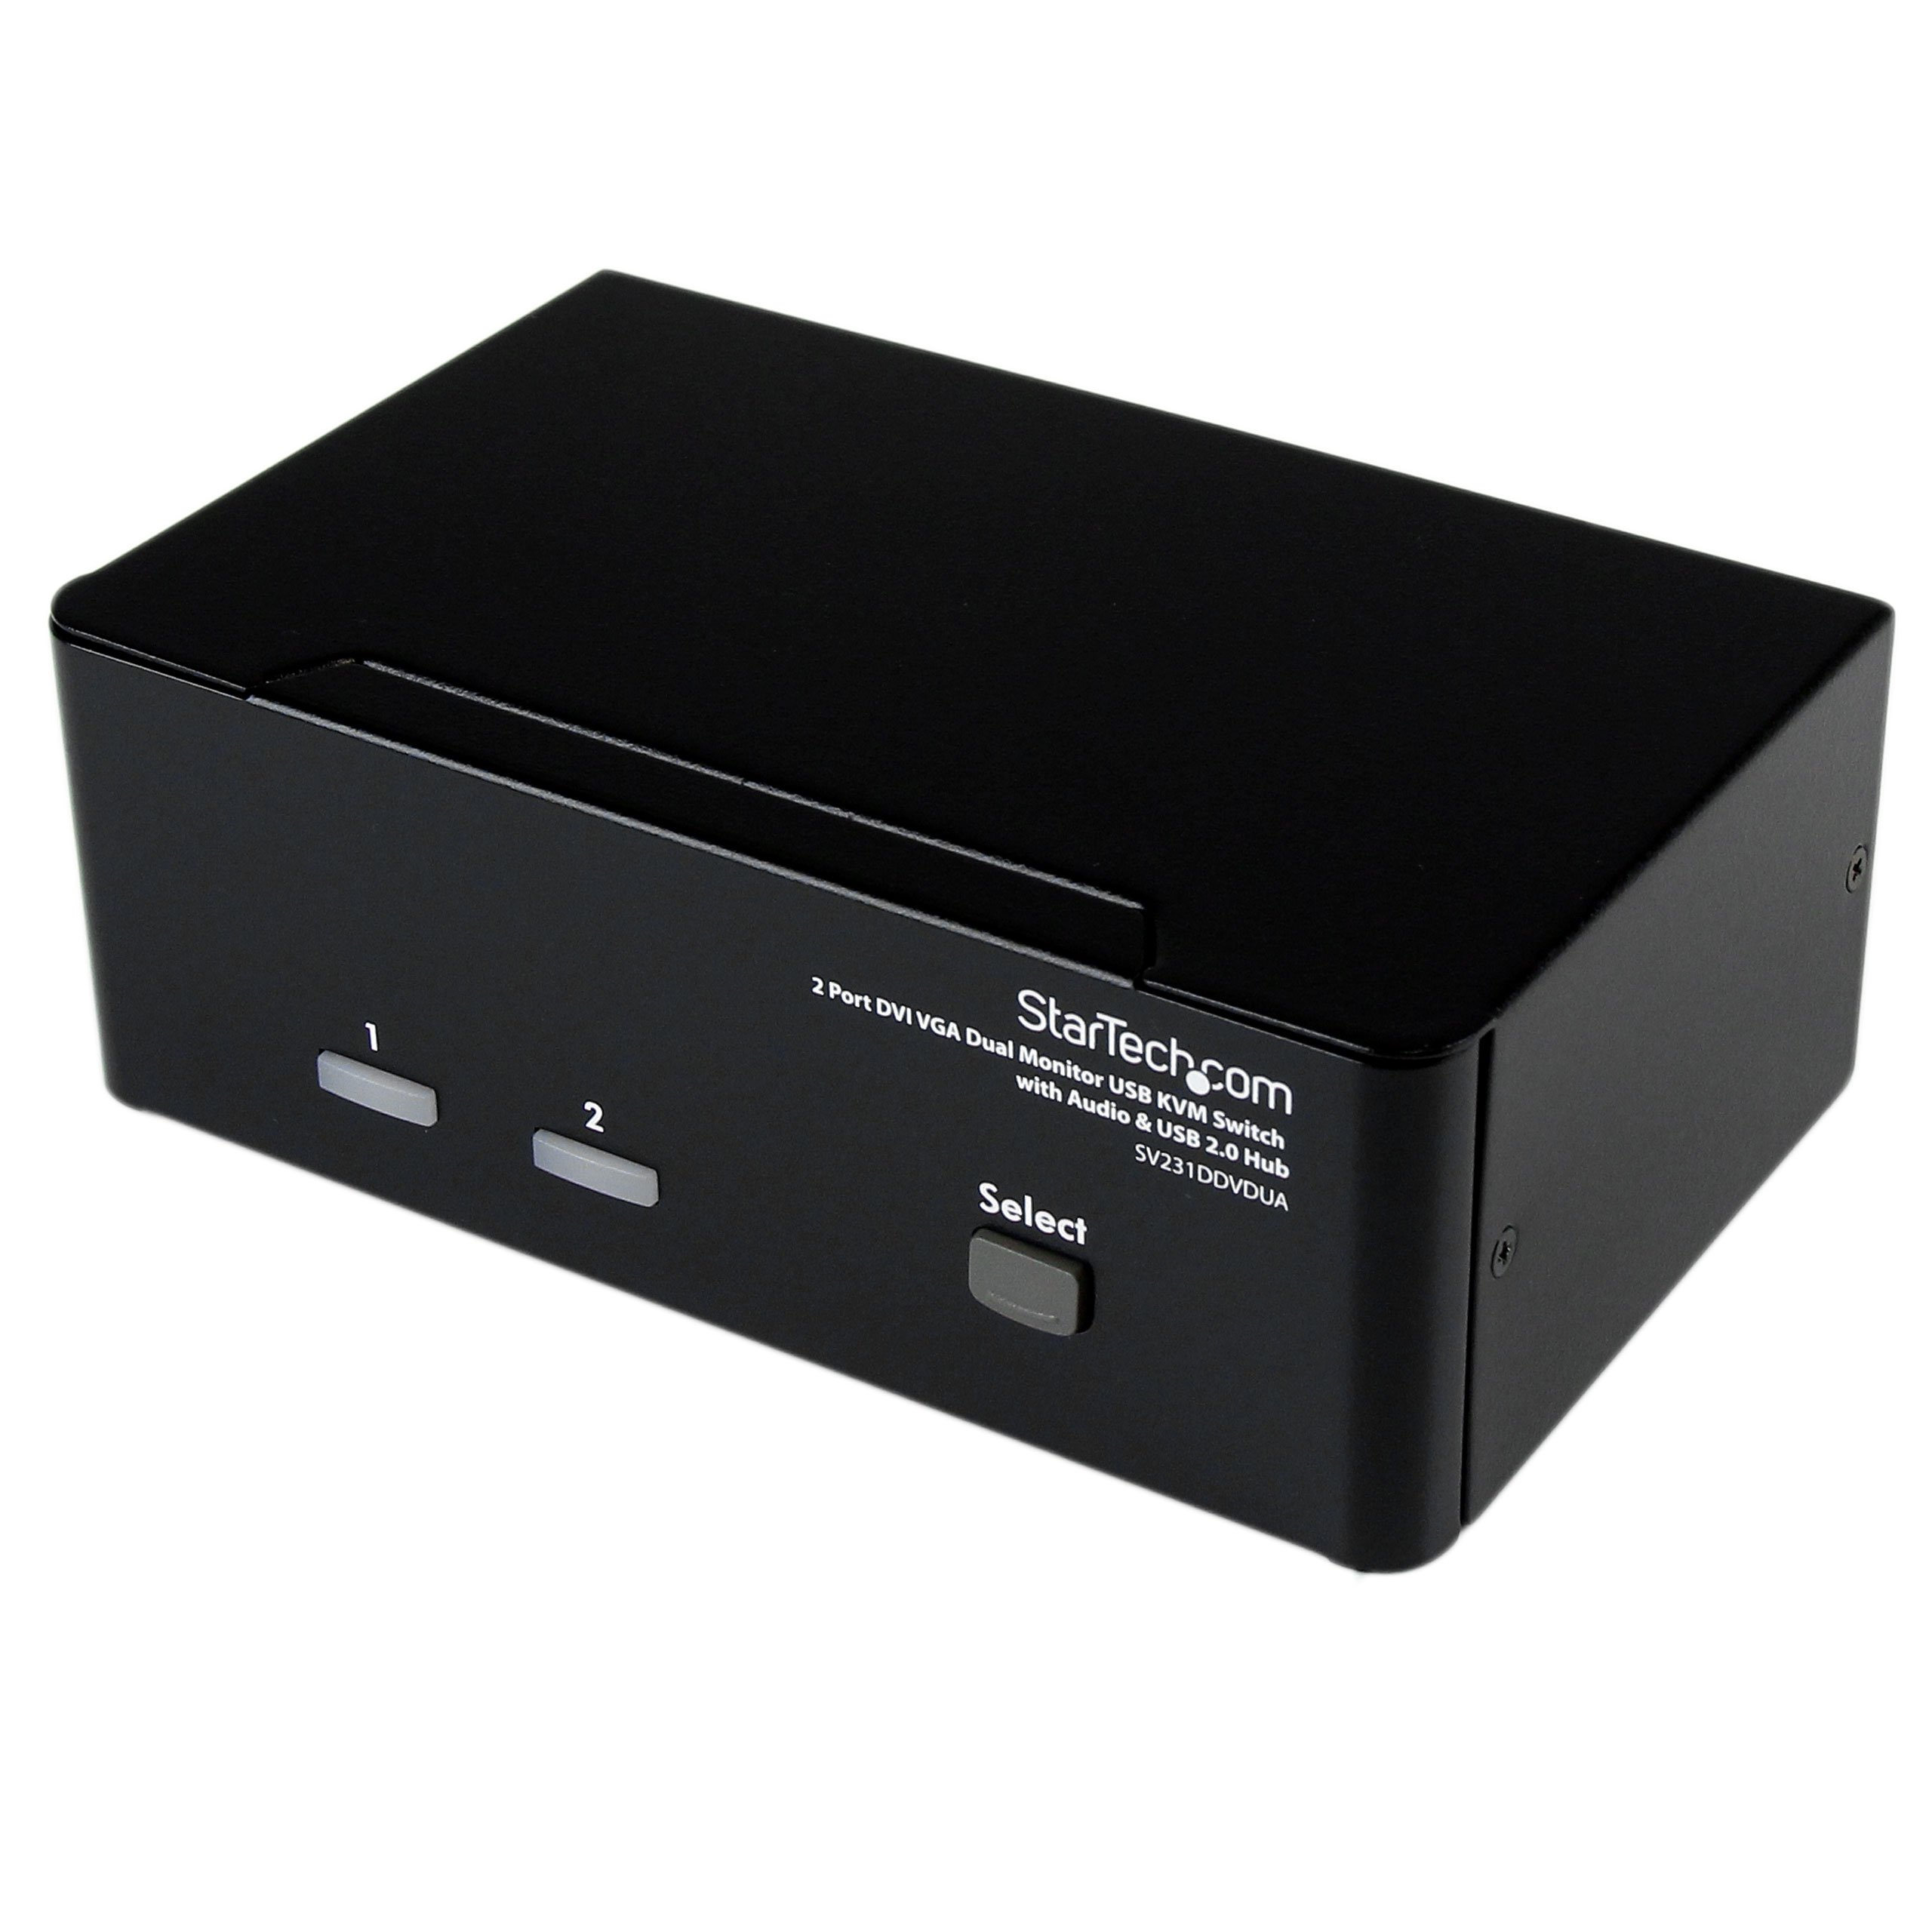 StarTech.com 2 Port DVI VGA Dual Monitor KVM Switch USB with Audio & USB 2.0 Hub - Dual Monitor KVM Switch DVI and VGA